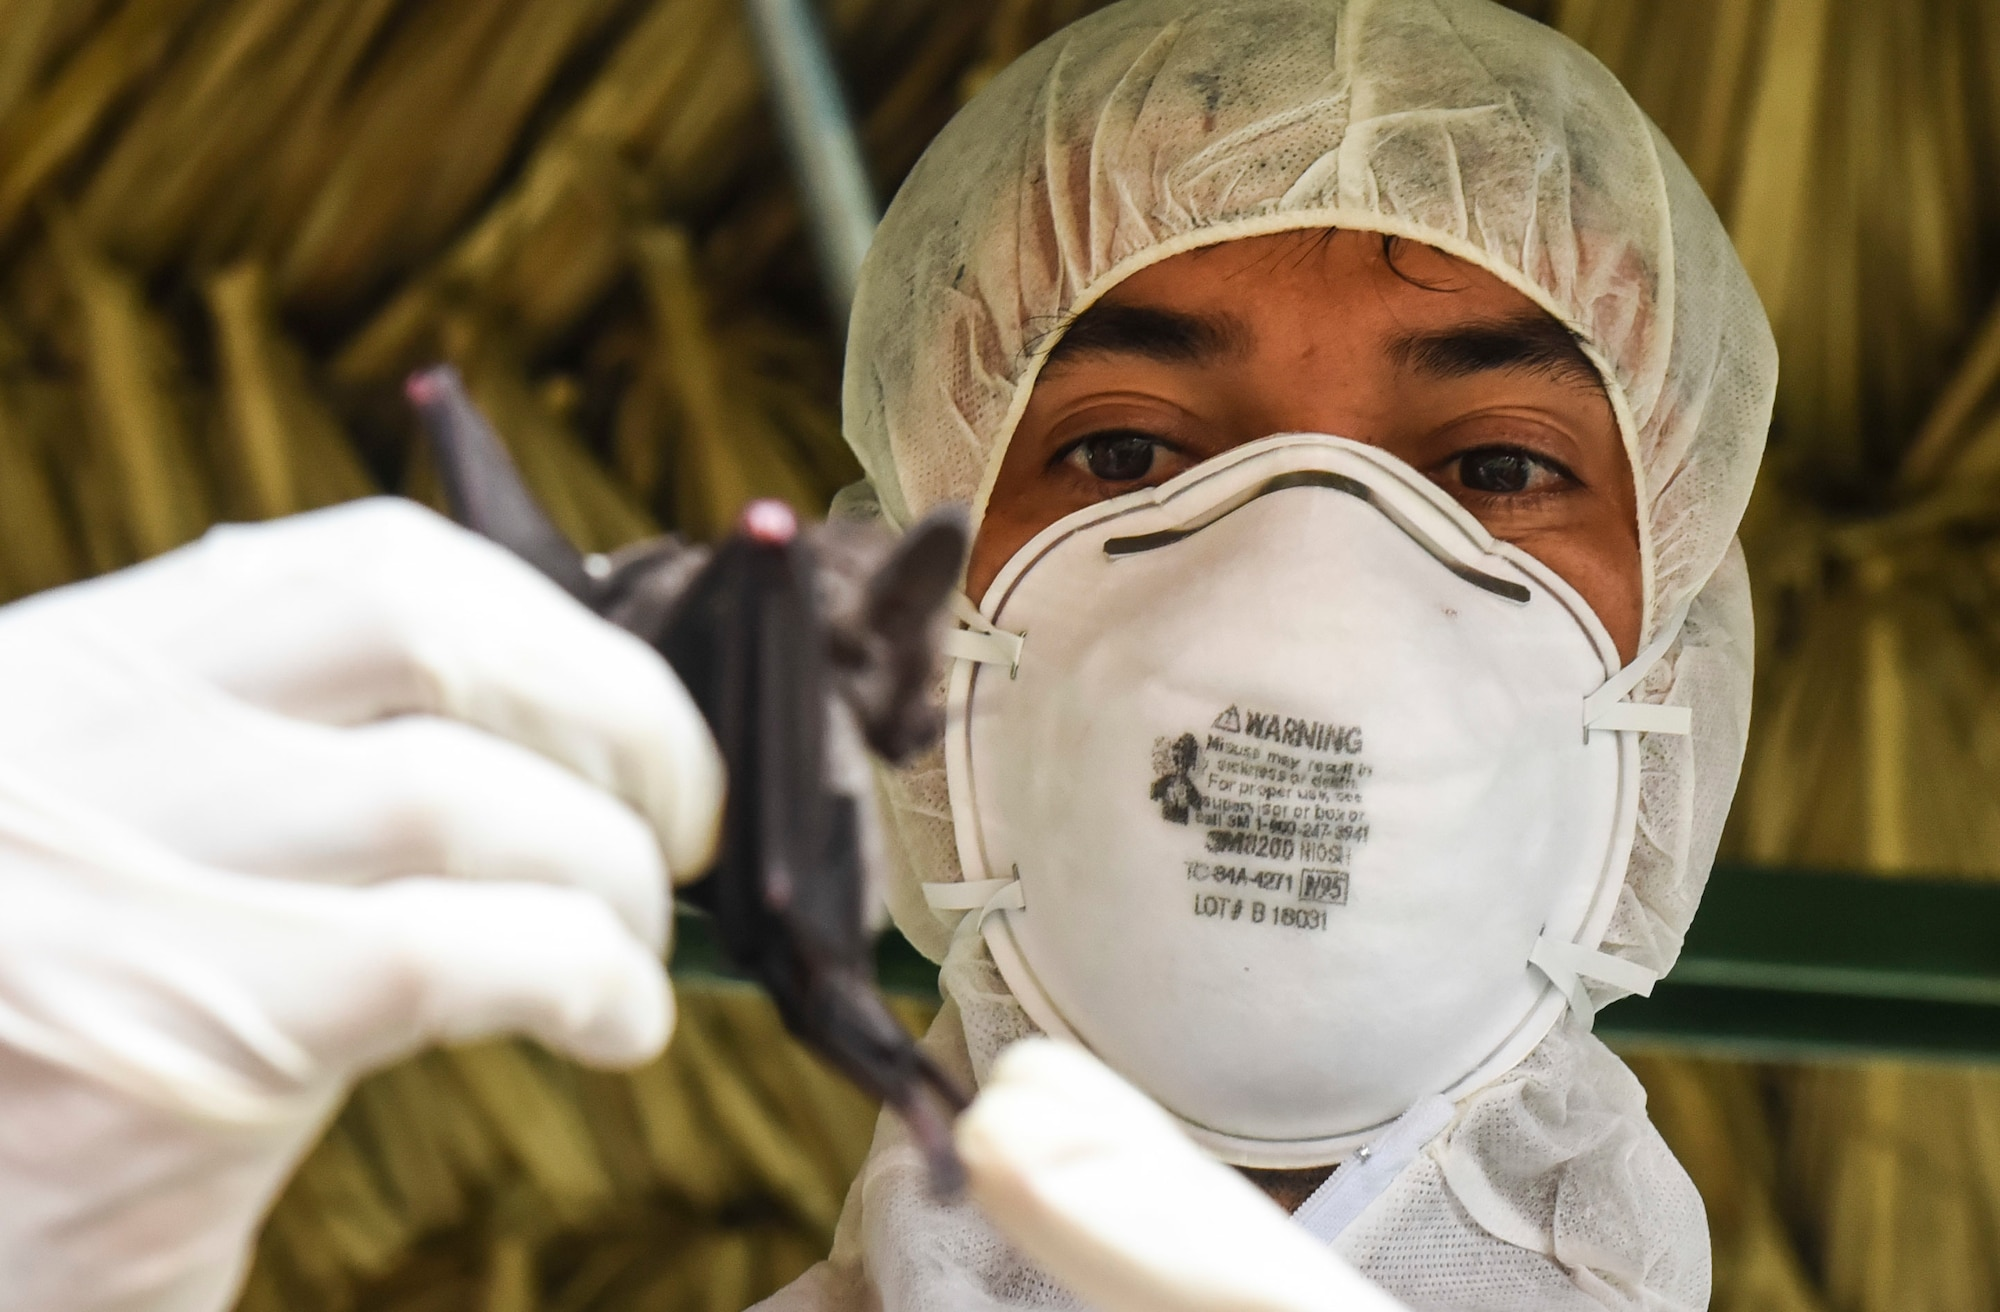 Publio Gonzalez, a biologist with the Gorgas Institute, holds a bat in Meteti, Panama, June 6, 2018. Gonzalez and U.S. military doctors were participating in an Emerging Infectious Diseases Training Event, in which they received informational lectures from Panamanian infectious disease experts and field studies of possible virus-carrying wildlife and insects. The event took place during Exercise New Horizons 2018, which is a joint training exercise where U.S. military members conduct training in civil engineer, medical, and support services while benefiting the local community. (U.S. Air Force photo by Senior Airman Dustin Mullen)